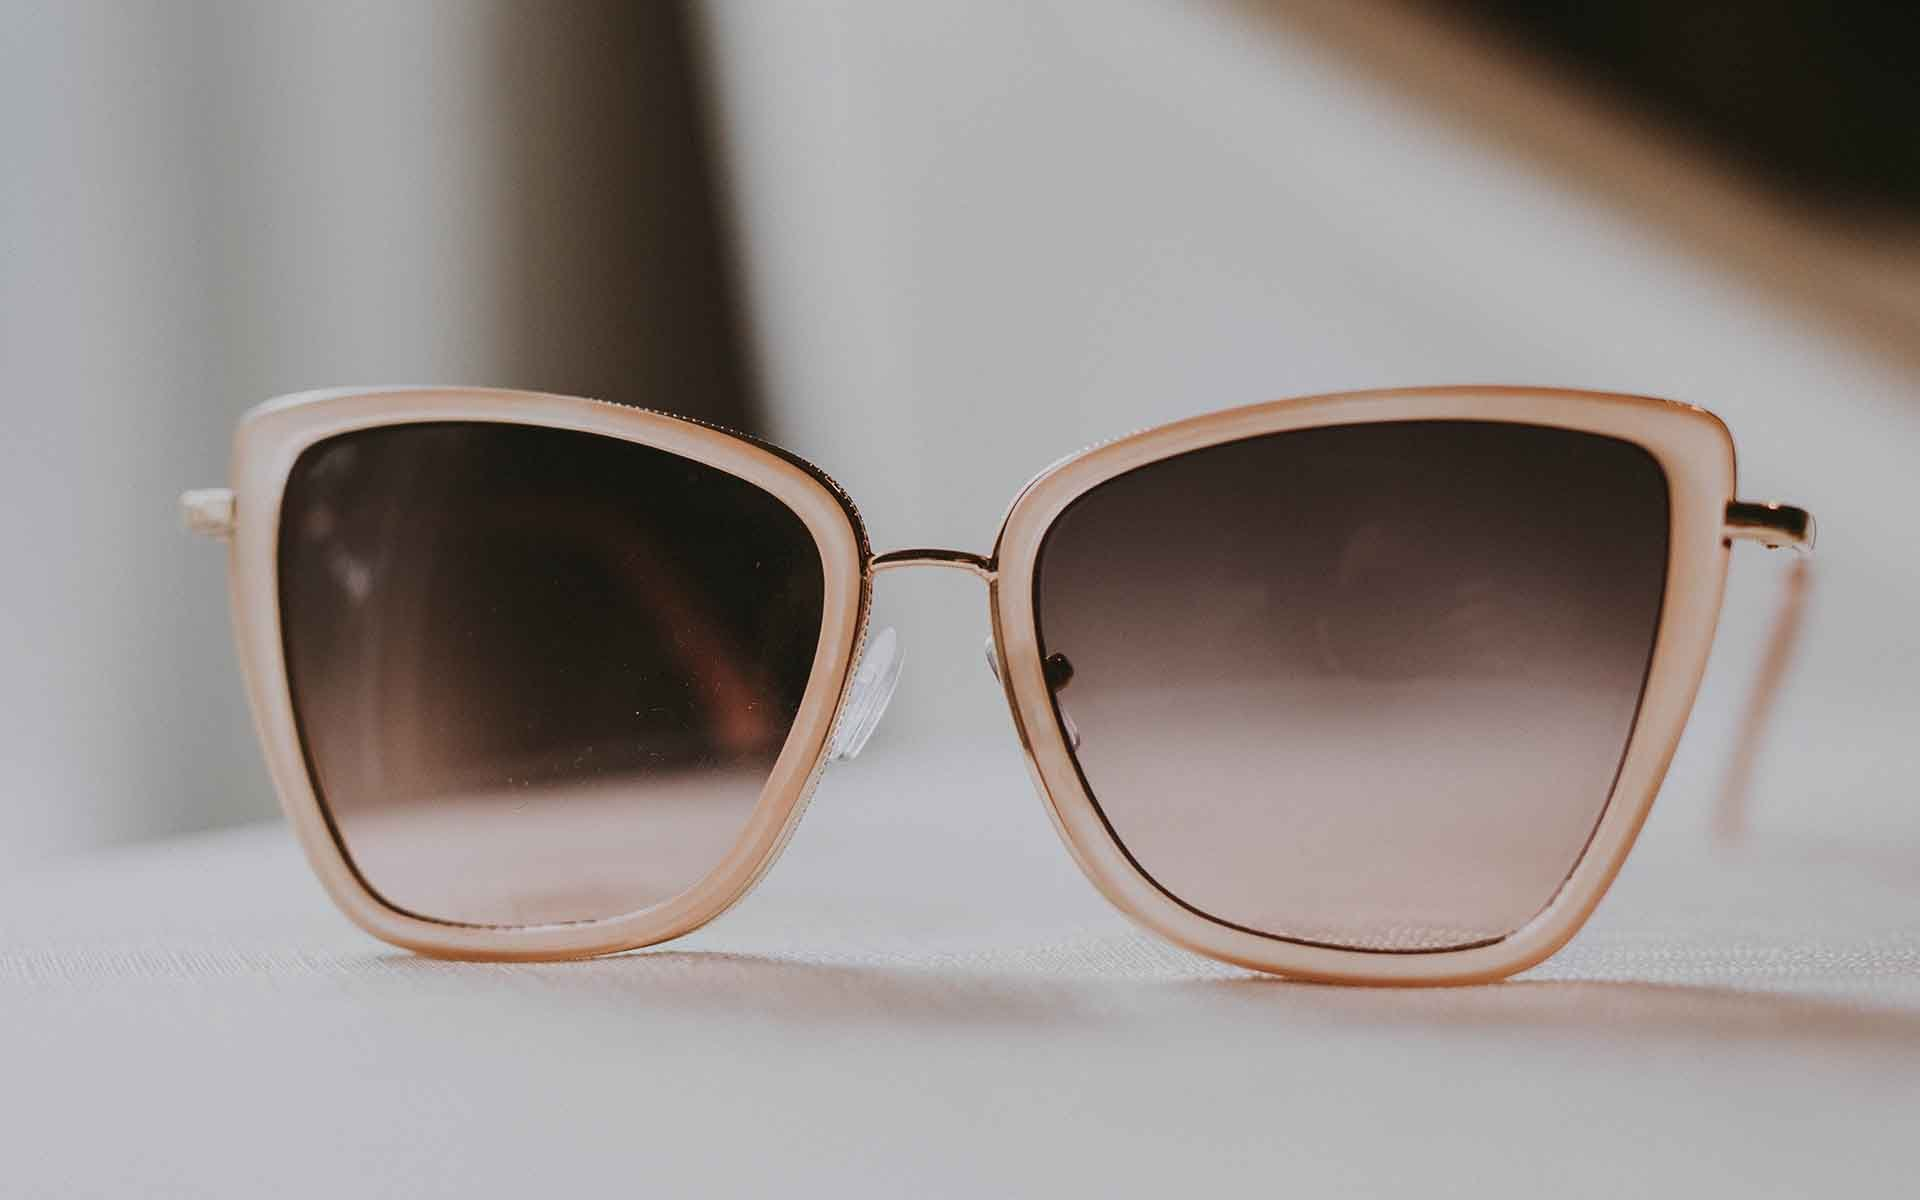 Tips for Buying New Sunglasses